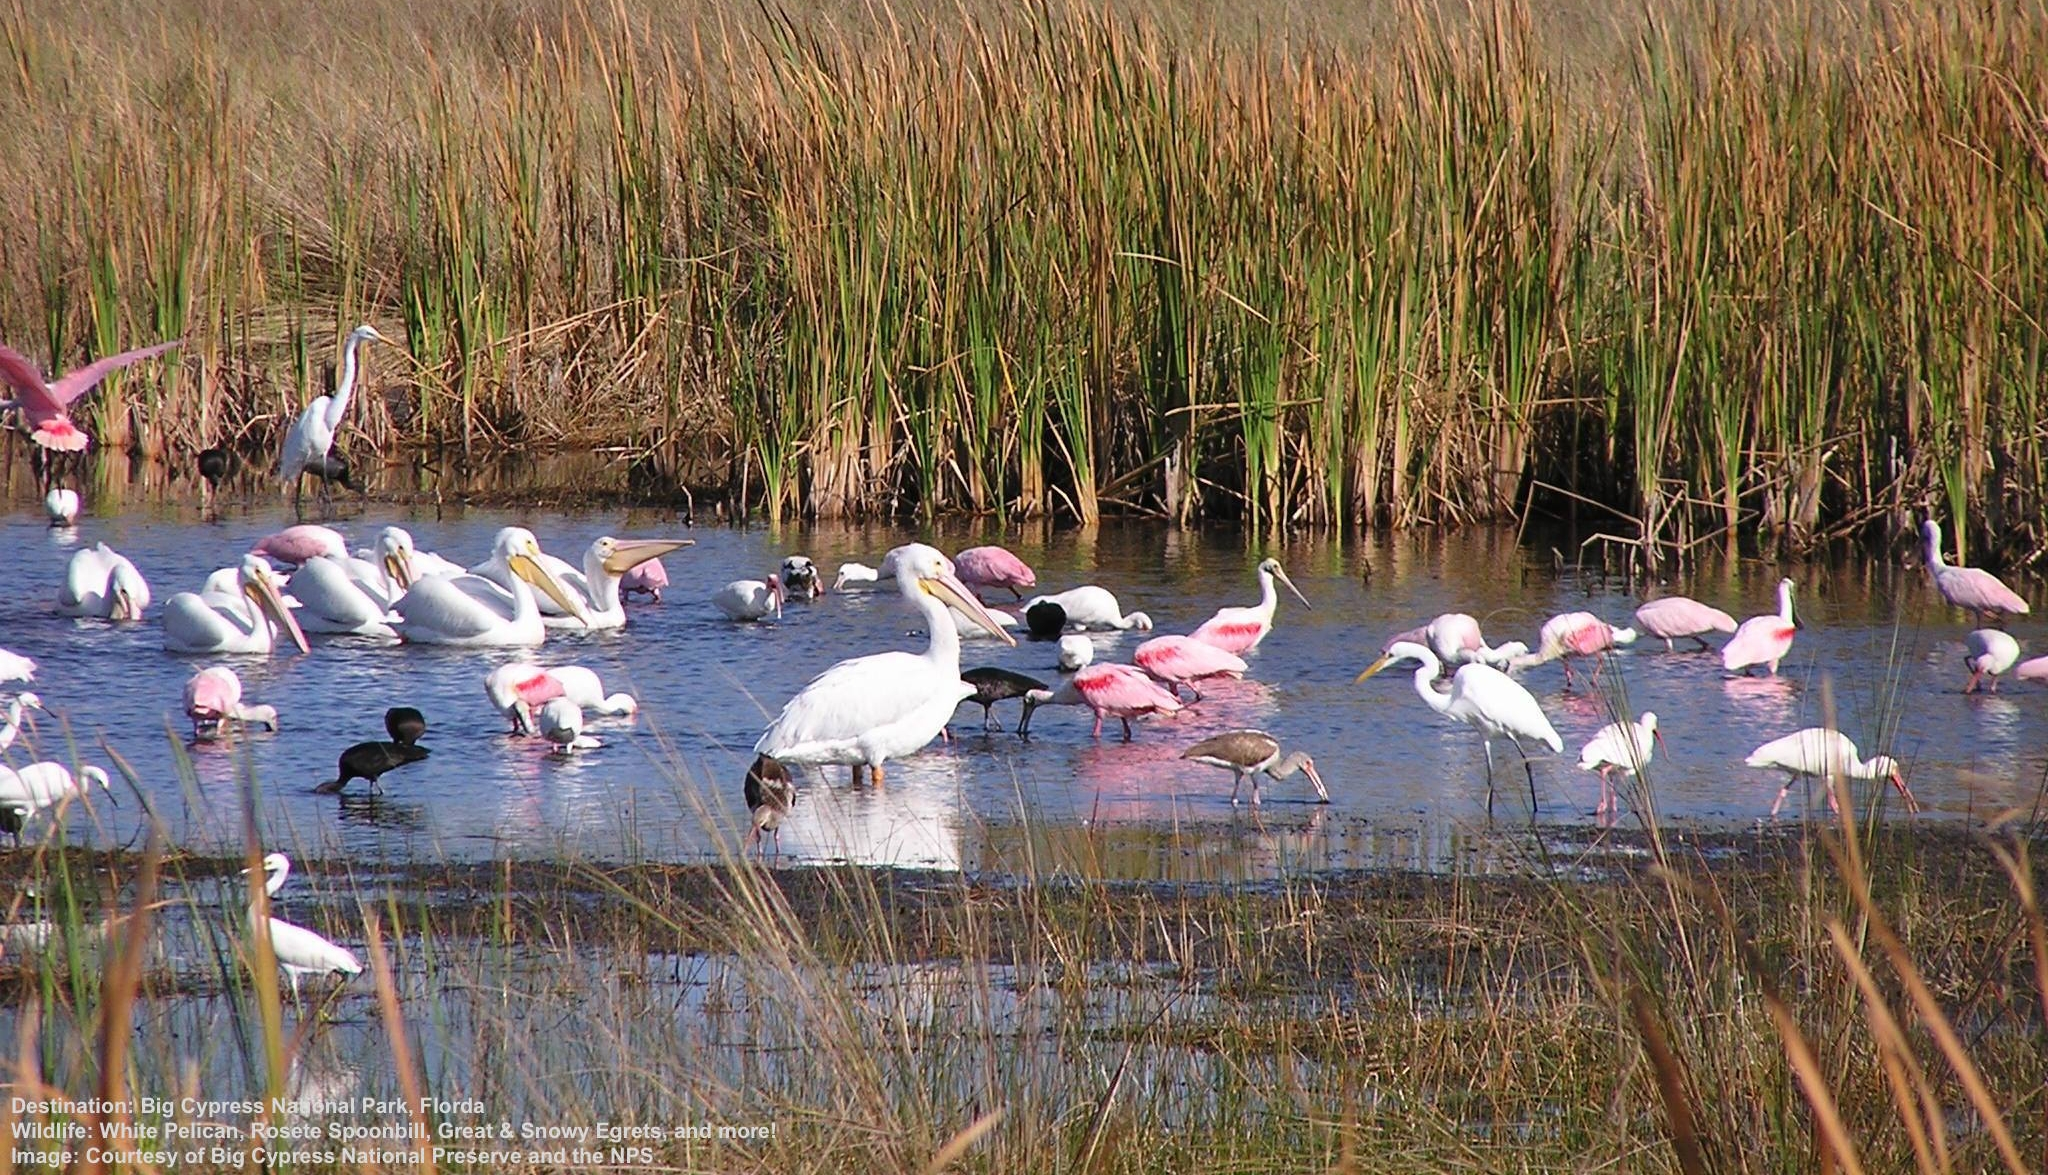 WHAT DO THESE BIRDS HAVE IN COMMON? MOST WERE HUNTED ALMOST TO EXTINCTION FOR FASHION IN THE 1800'S. TODAY, PROTECTED, THEY ARE COMING BACK. WHITE PELICAN, ROSEATE SPOONBILL, GREAT EGRET, SNOWY EGRET AND MORE IN BIG CYPRESS NATIONAL PRESERVE. IMAGE THANKS TO THE NATIONAL PARK SERVICE AND BCNP.